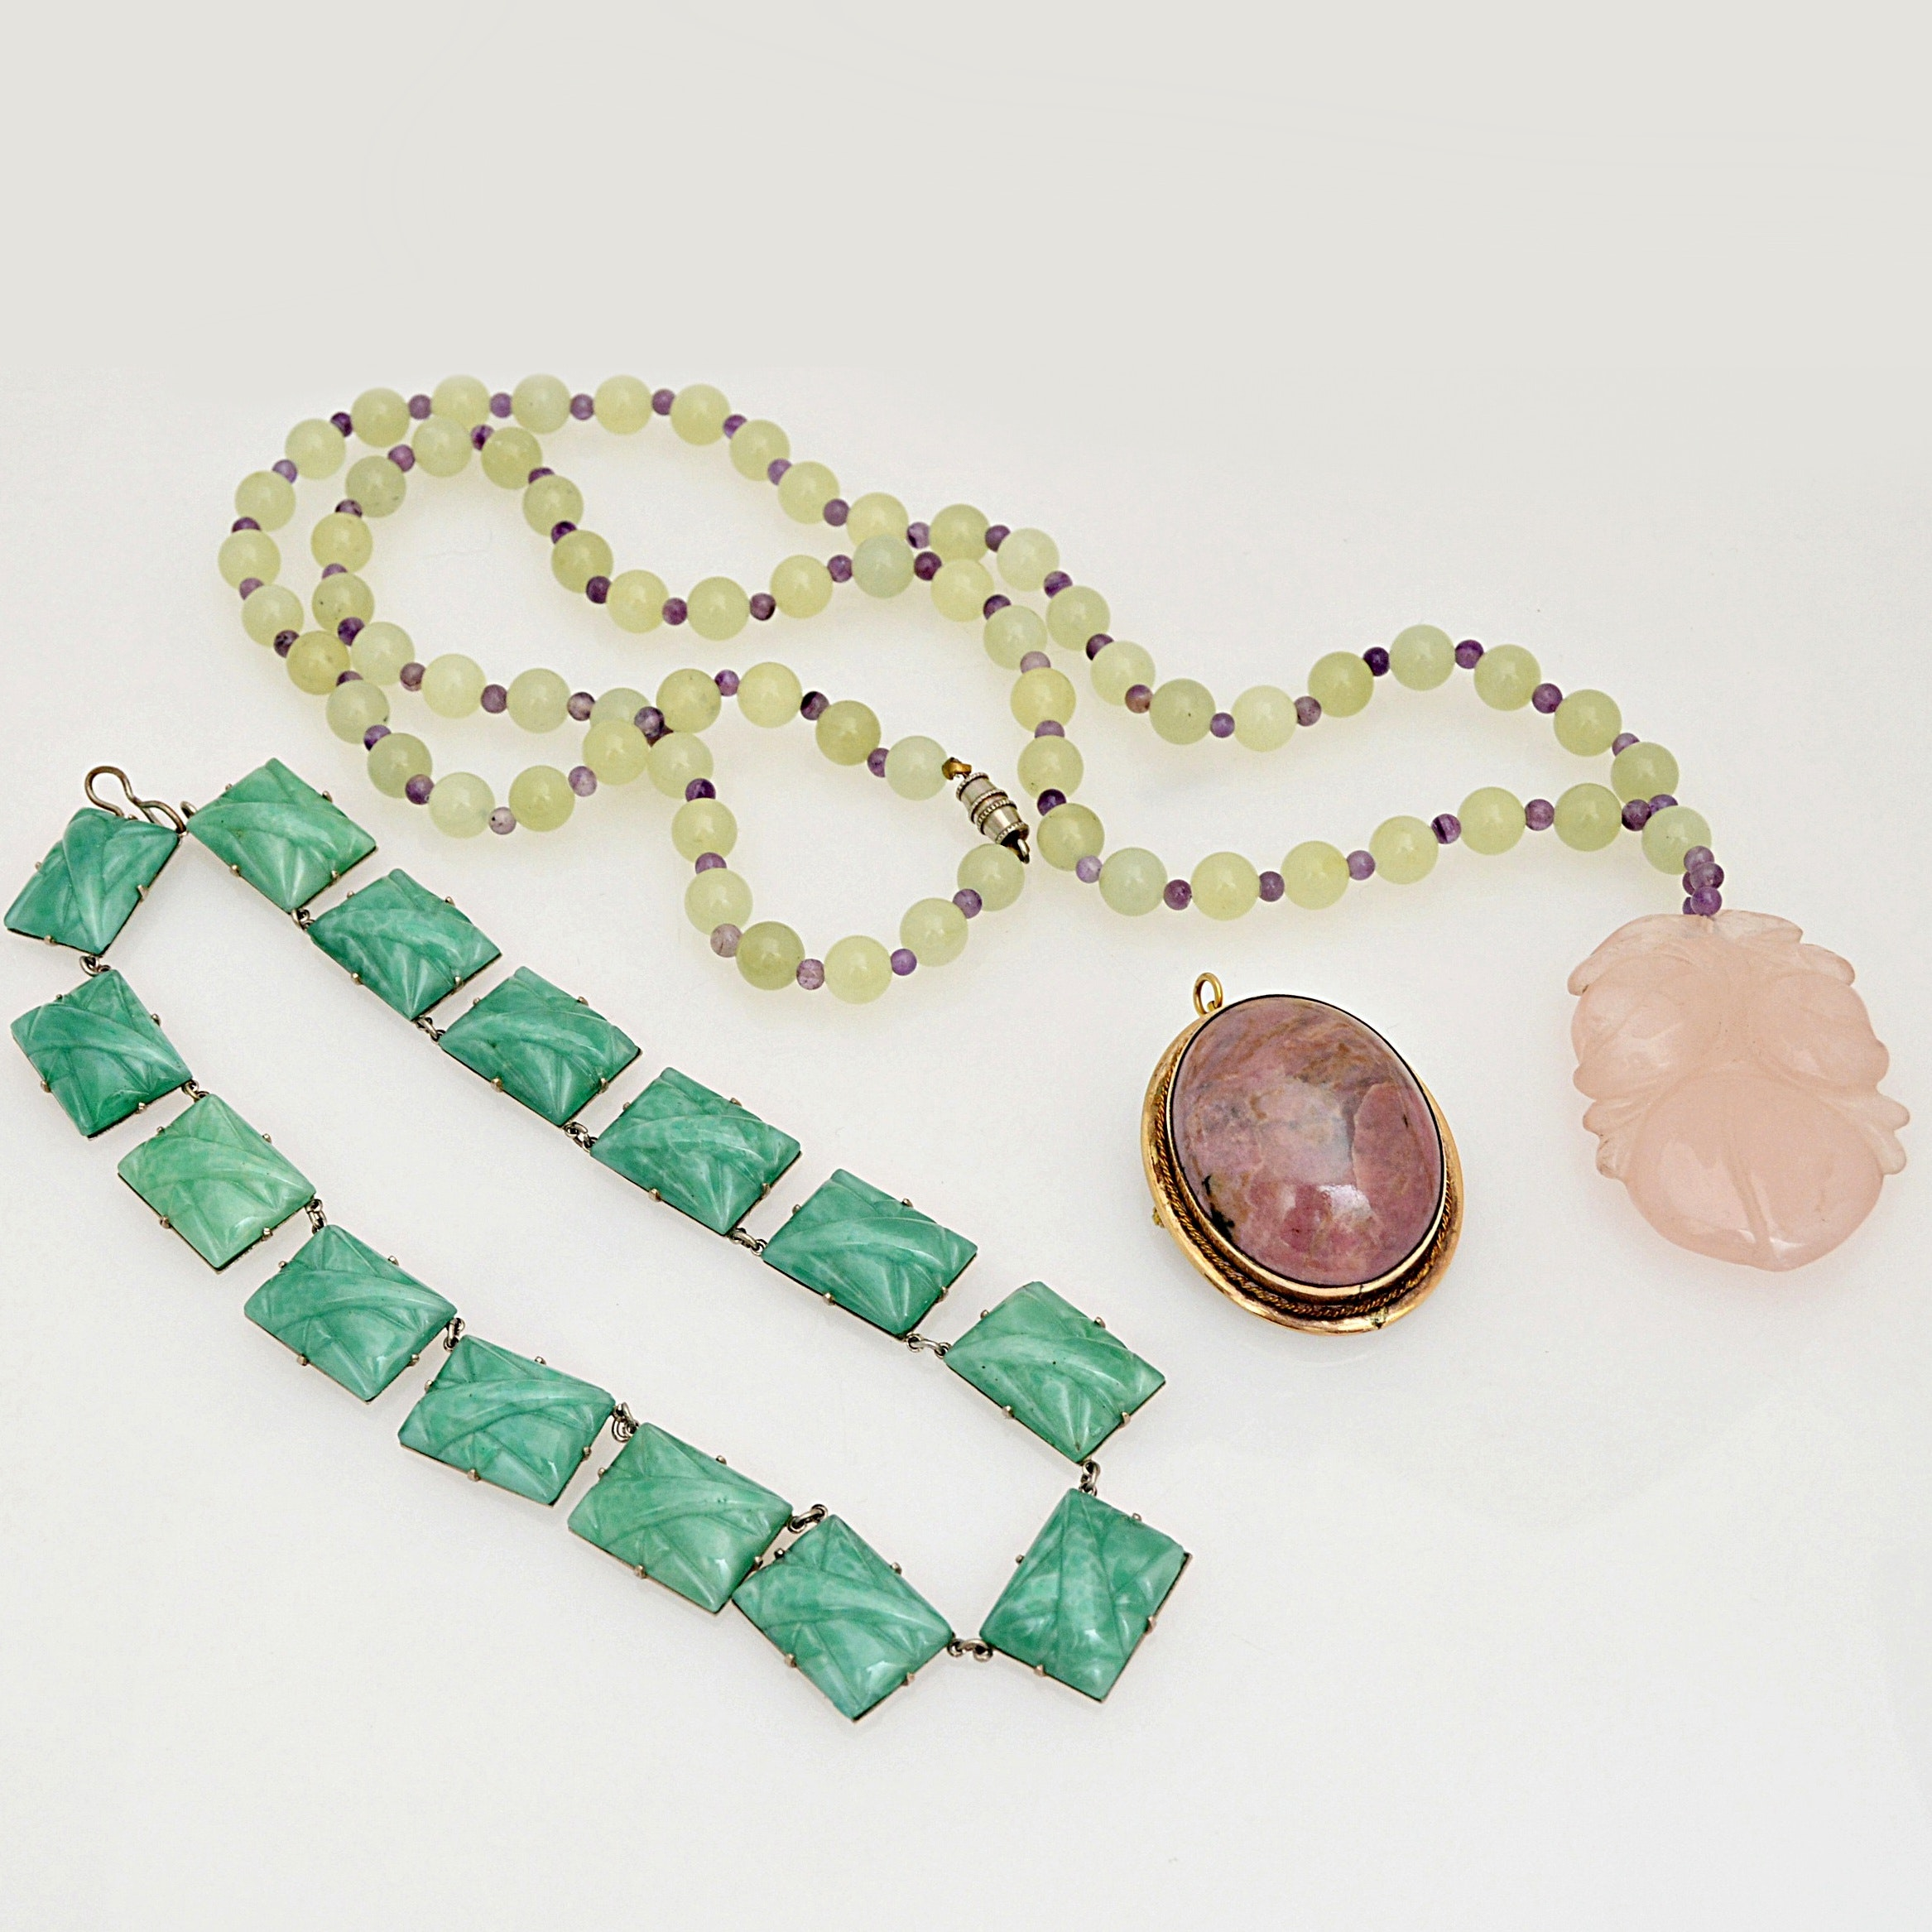 Pendants and Necklaces in Rose Quartz, Amethyst, Rhodonite, Bowenite and Glass